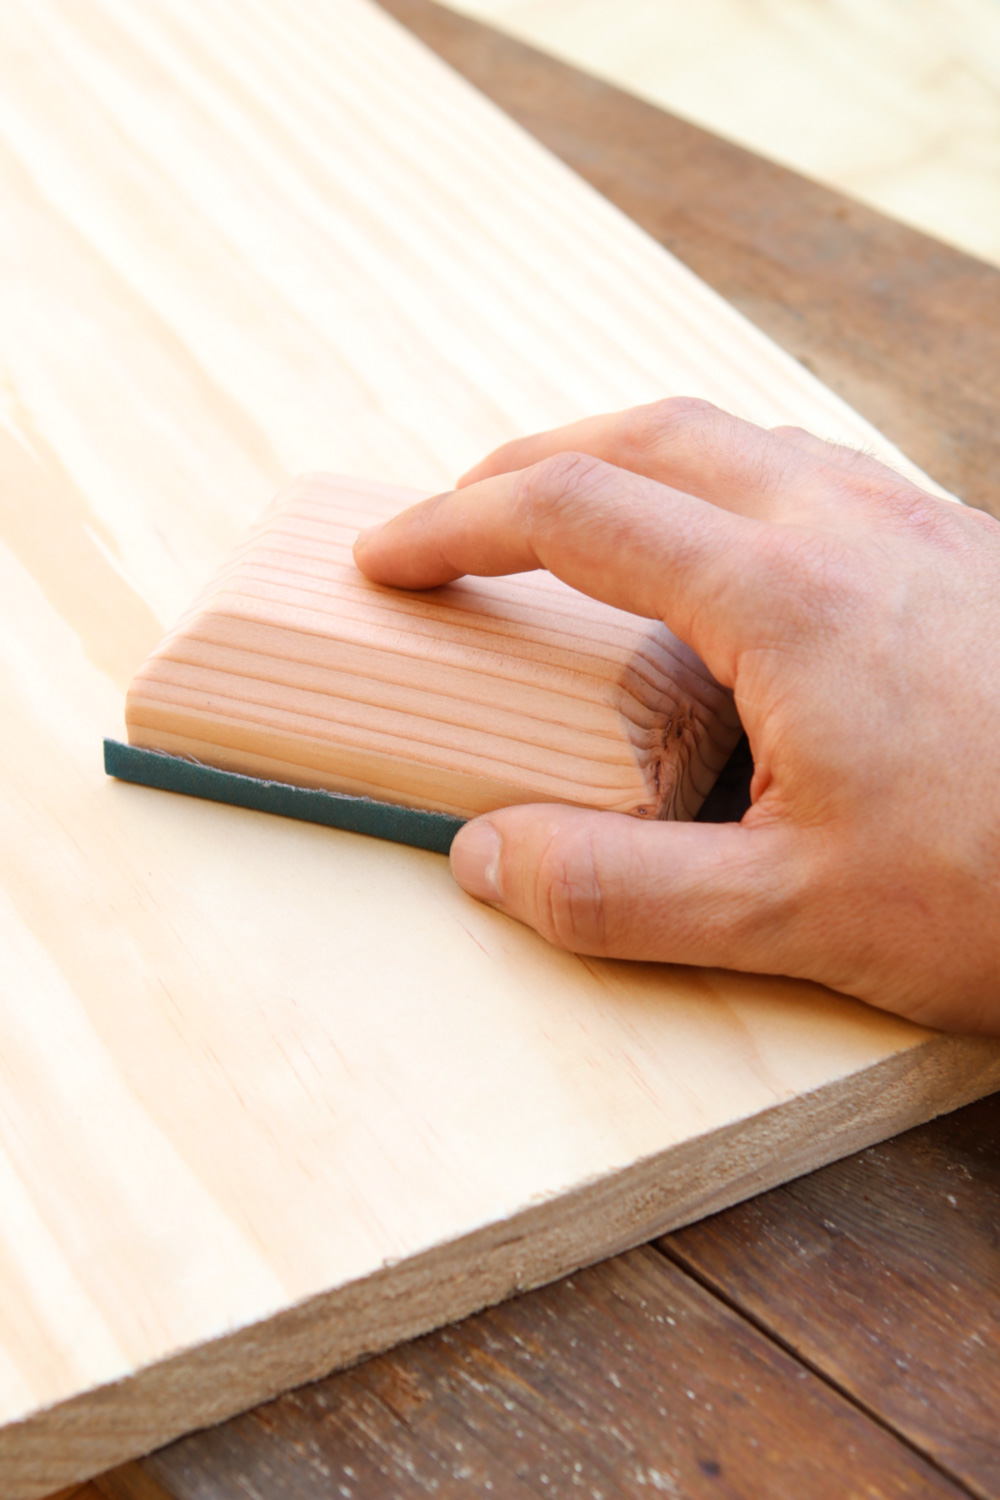 How To Make The Ultimate Sanding Block